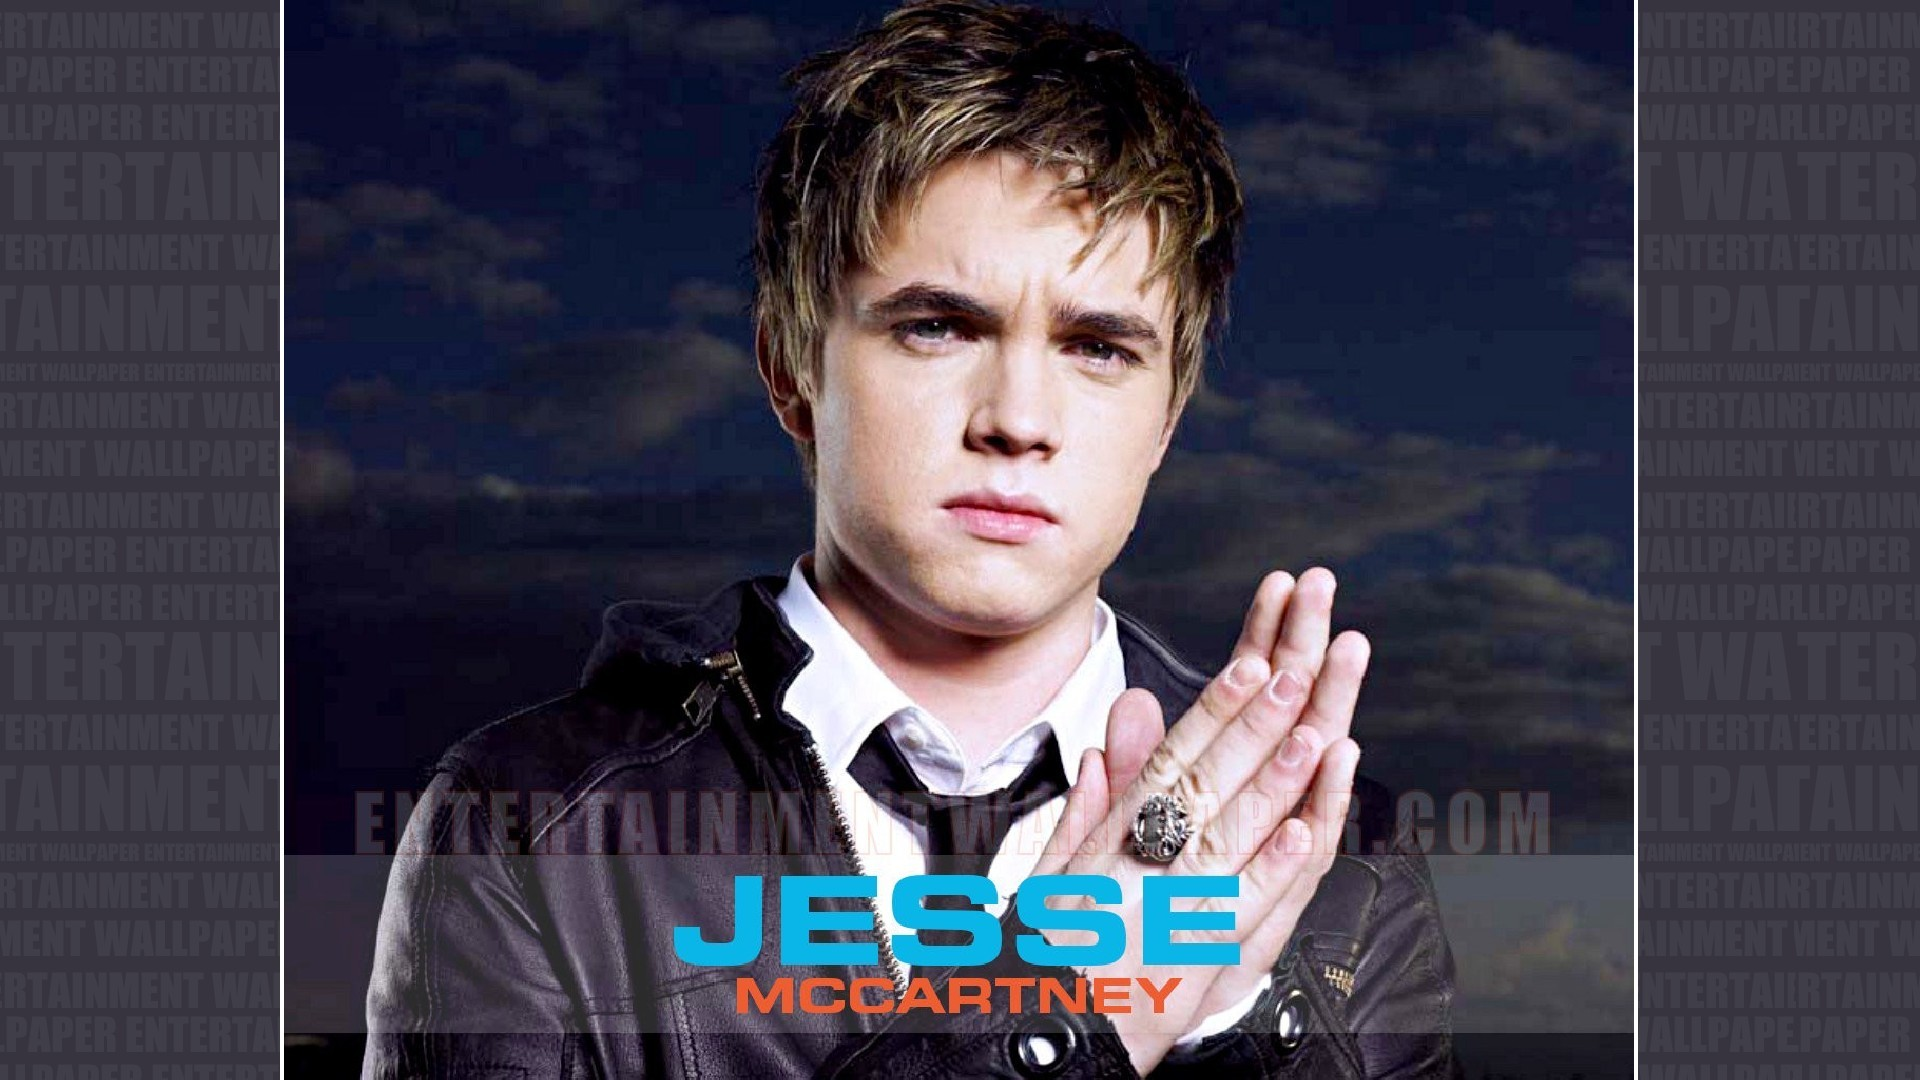 1920x1080 Jesse McCartney Wallpaper - #40028195 ( .